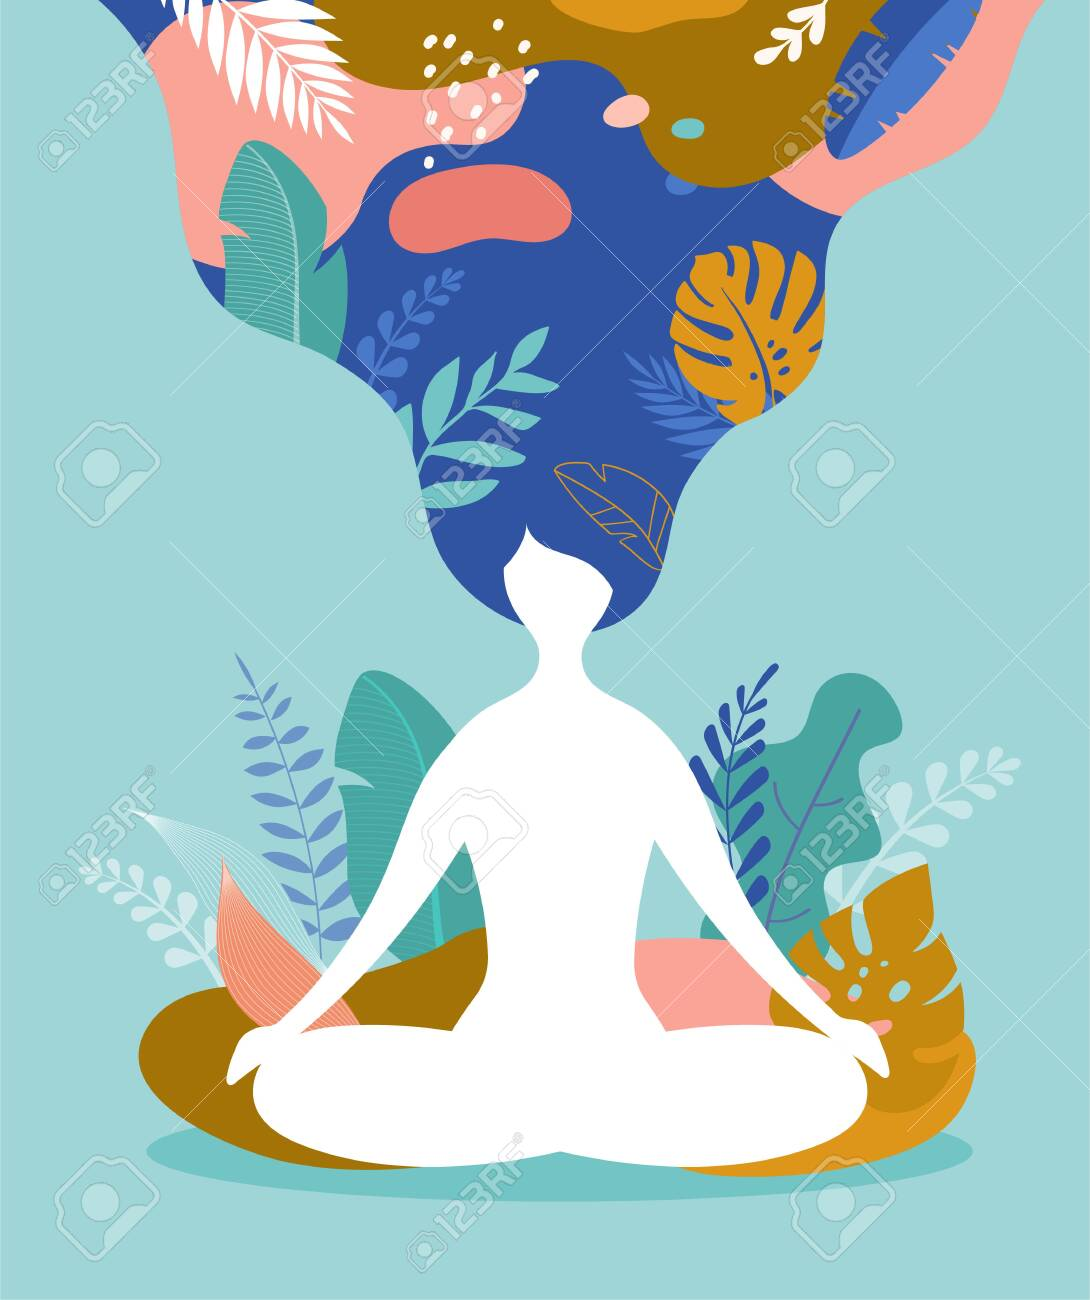 Coping With Stress And Anxiety Using Mindfulness Meditation Royalty Free Cliparts Vectors And Stock Illustration Image 145109789